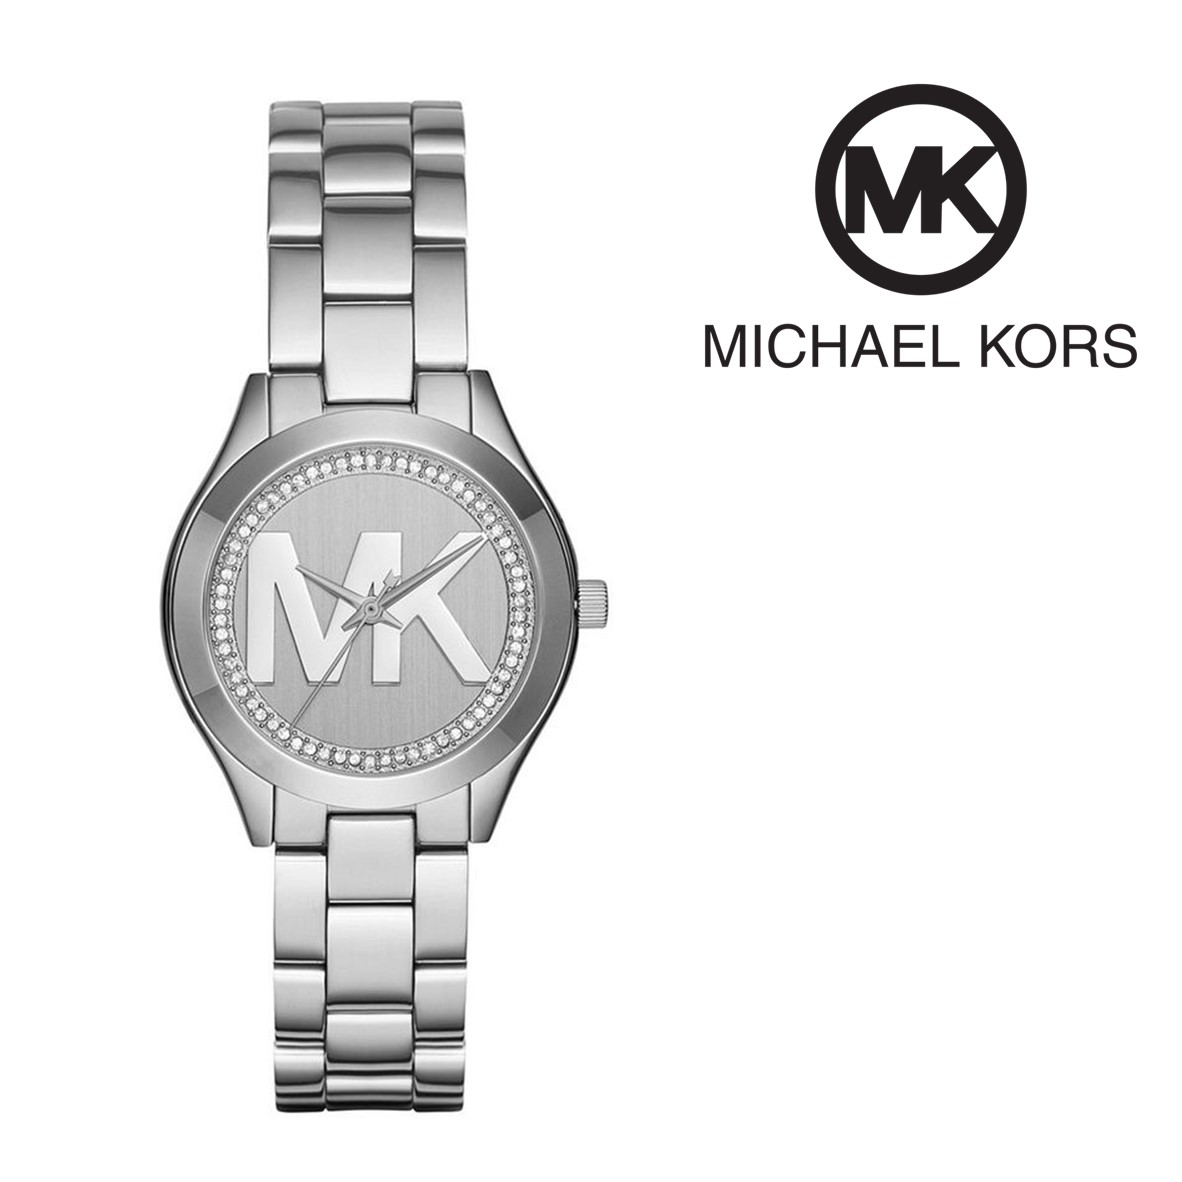 a9861d0b8 Relógio Michael Kors® Runway Slim Mini ll Silver | 5ATM - You Like It